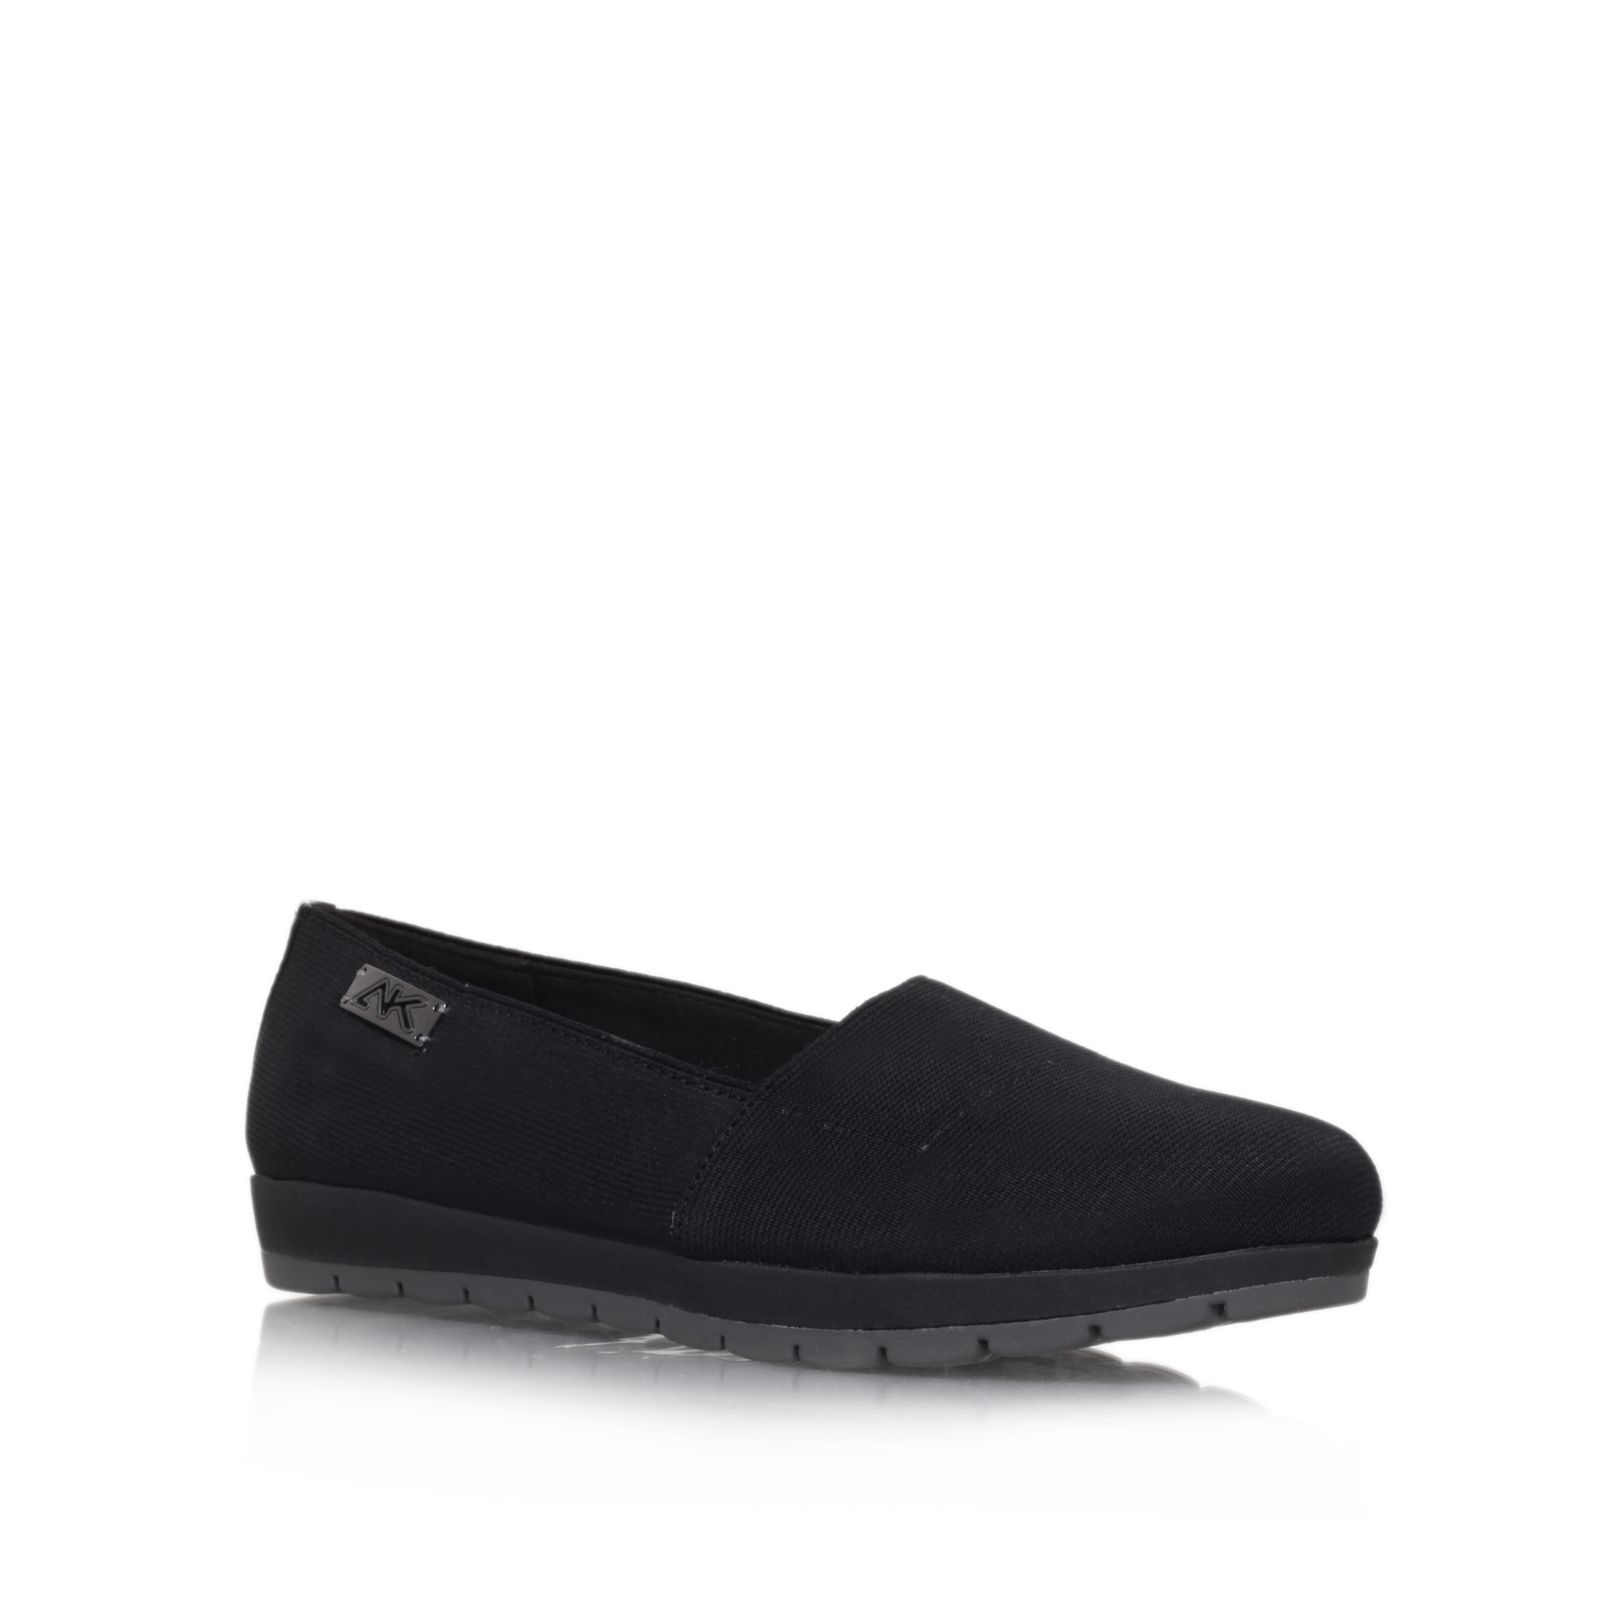 Zambrano2 loafers